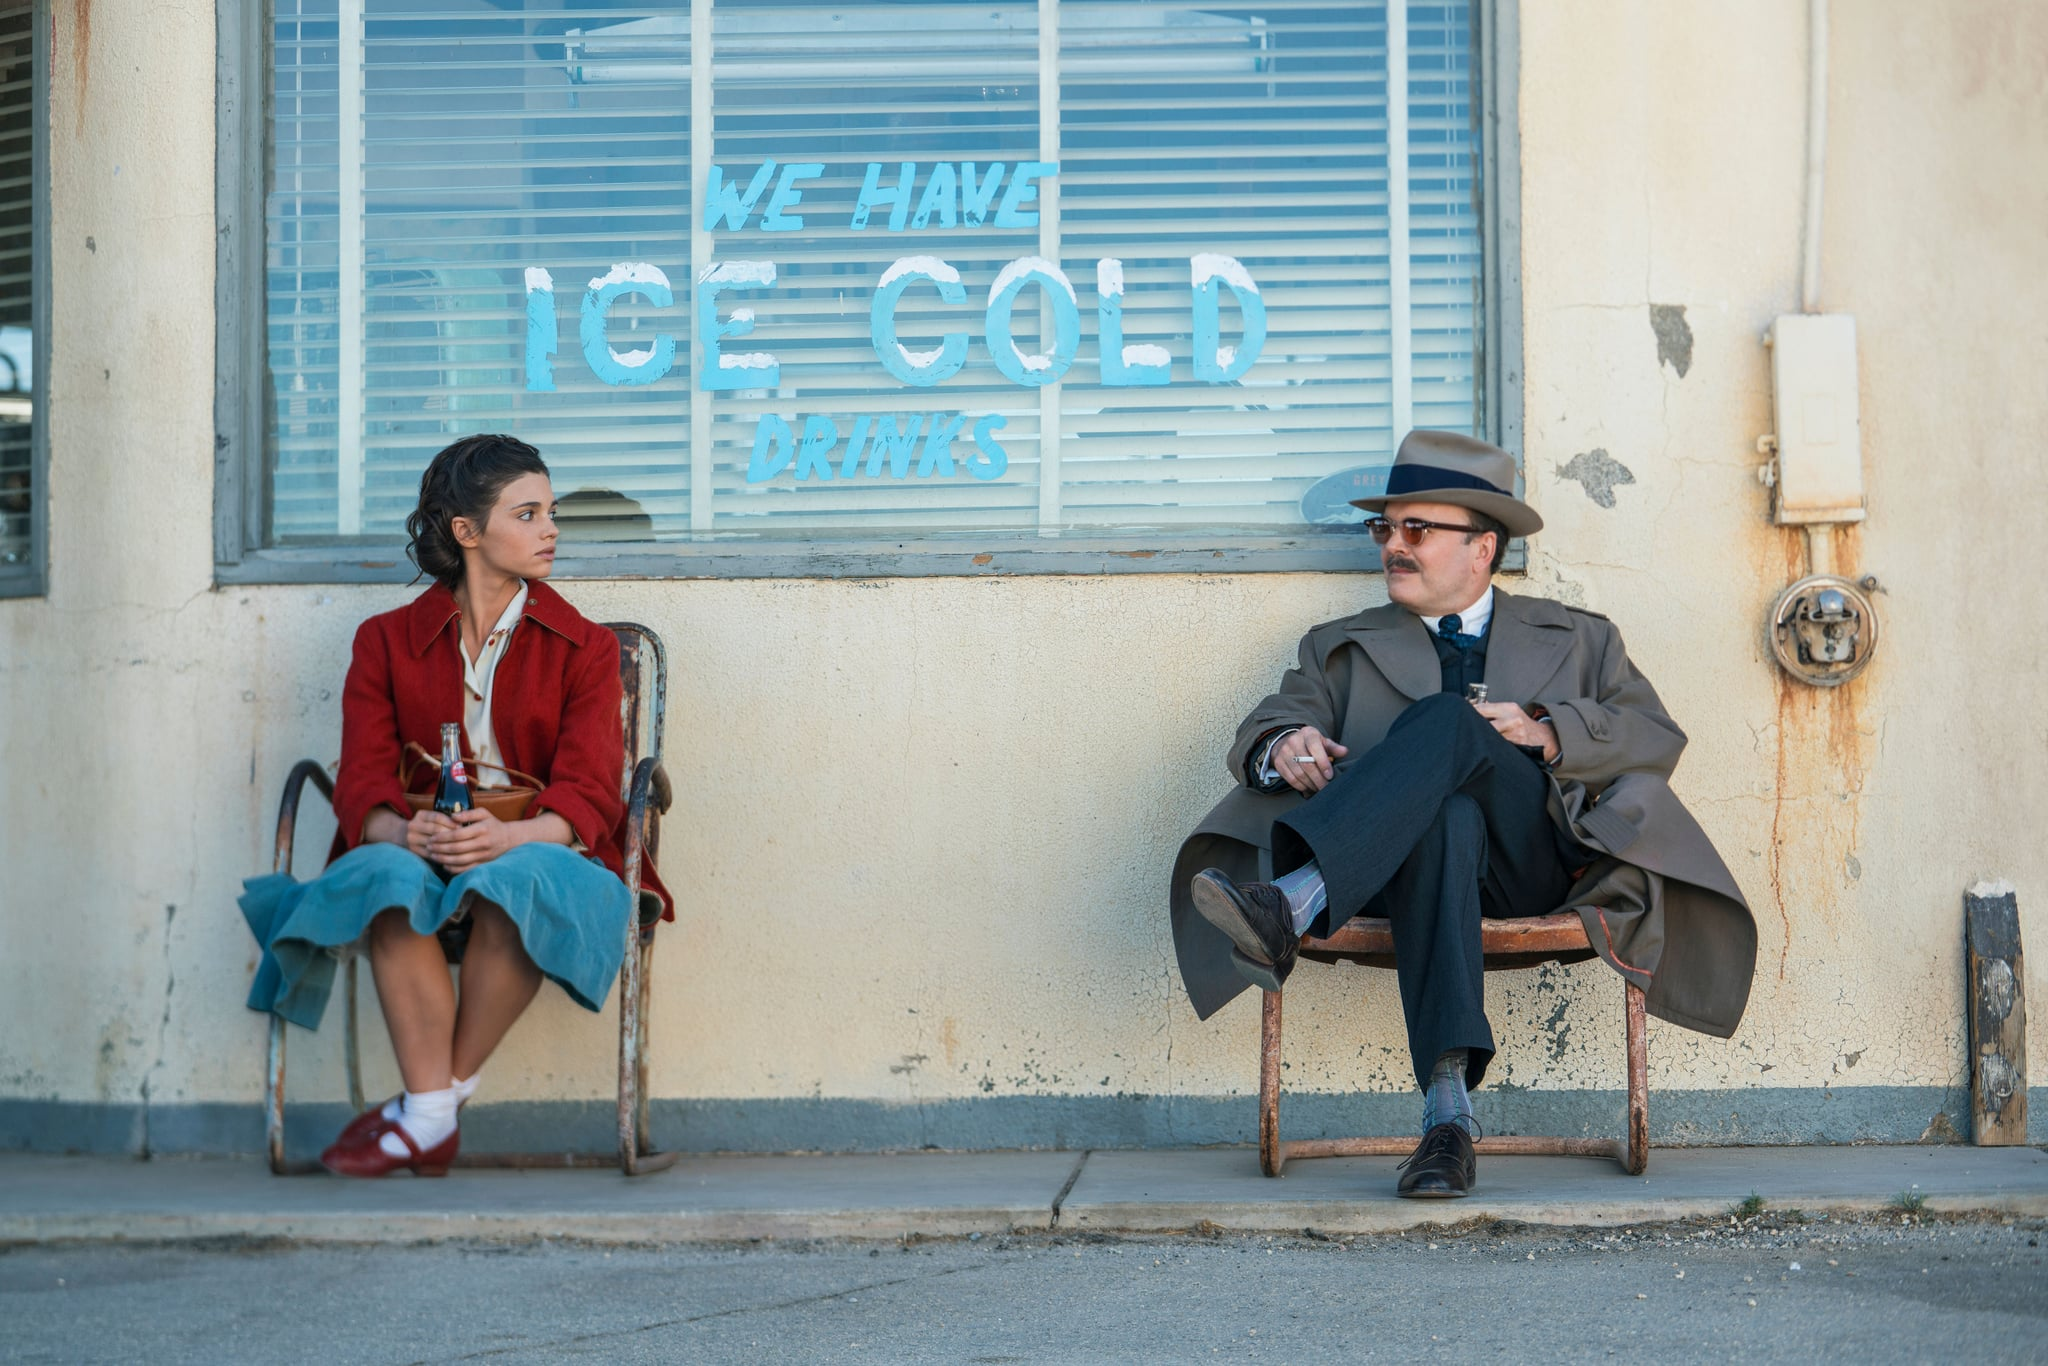 I AM THE NIGHT, from left: India Einsley, Jefferson Mays, 'One Day She'll Darken', (Season 1, ep. 101, aired January 28, 2019). photo: Clay Enos / TNT / courtesy Everett Collection